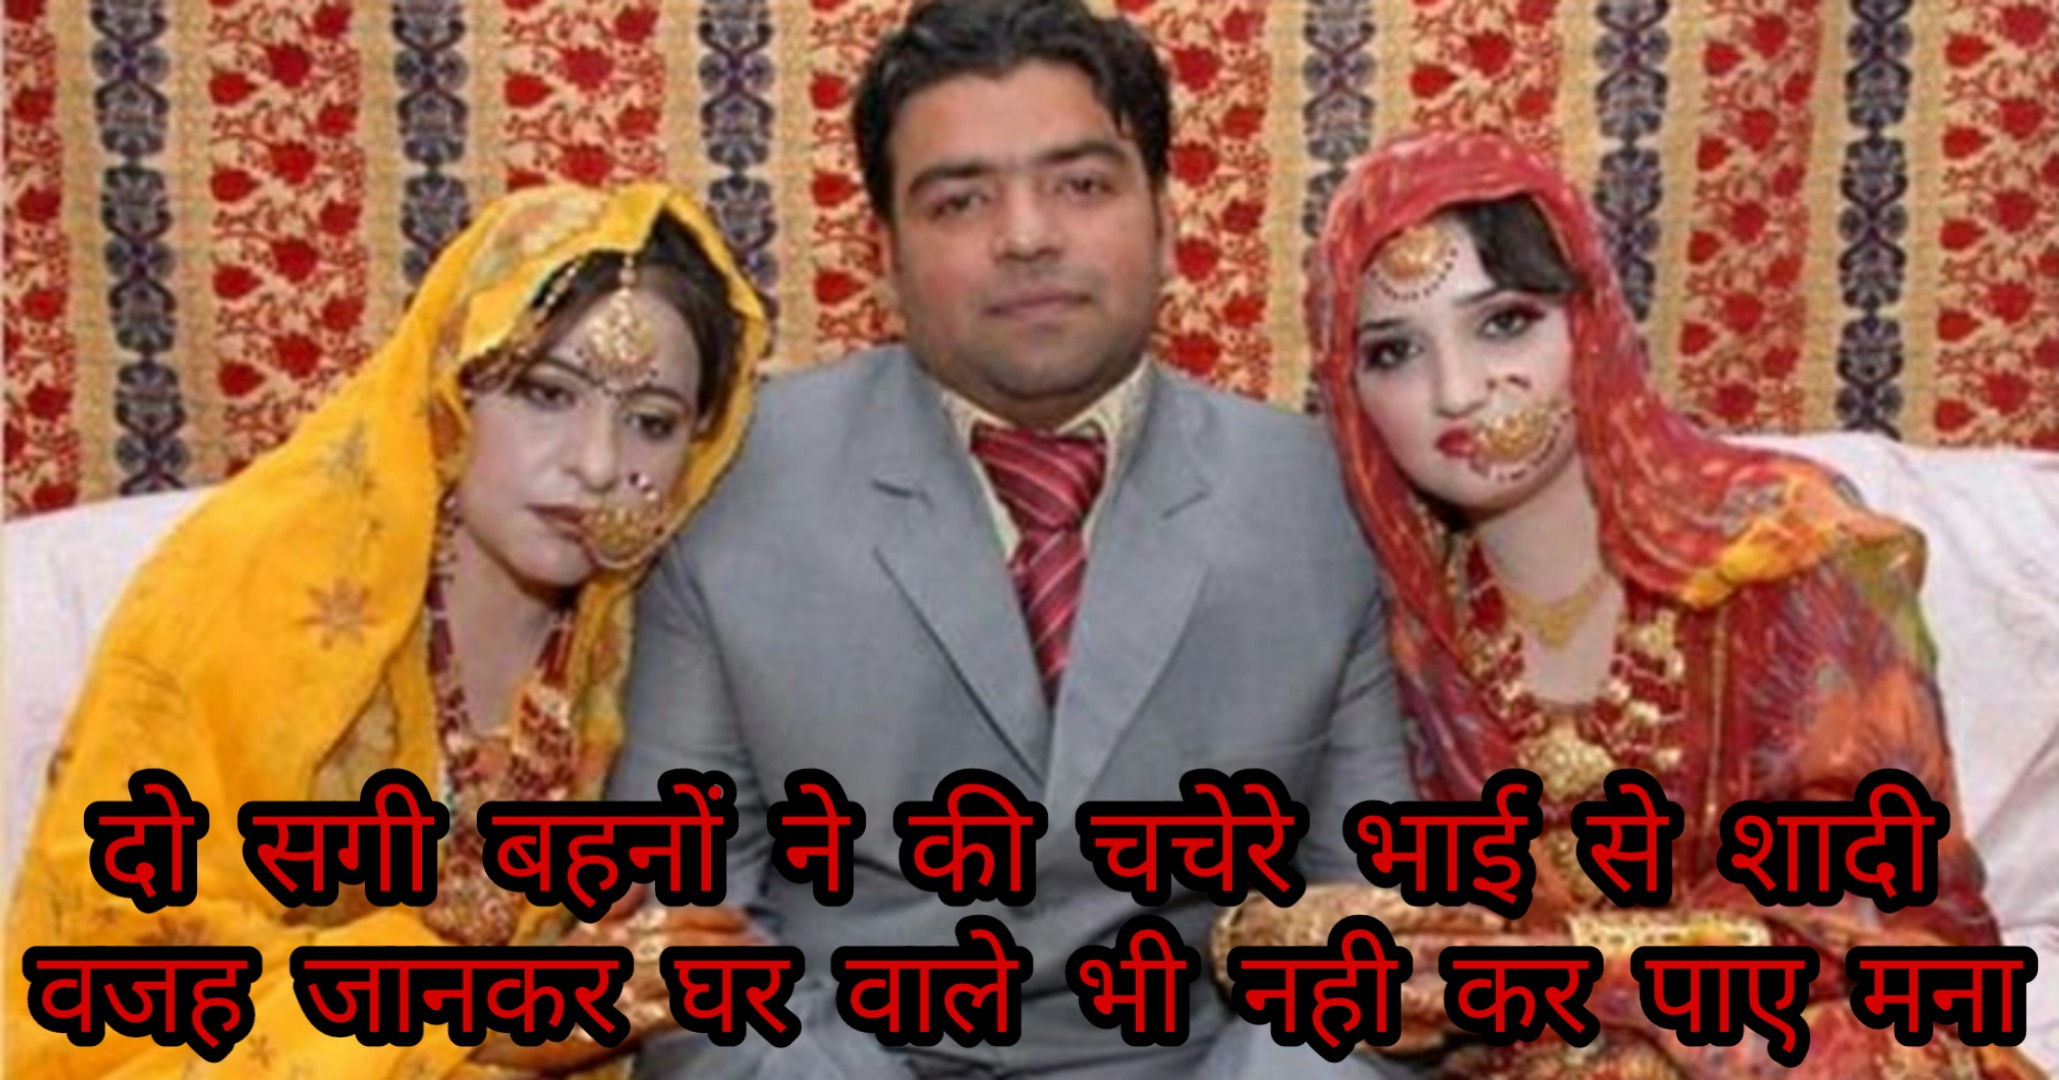 Two Sister marriage with his first cousin